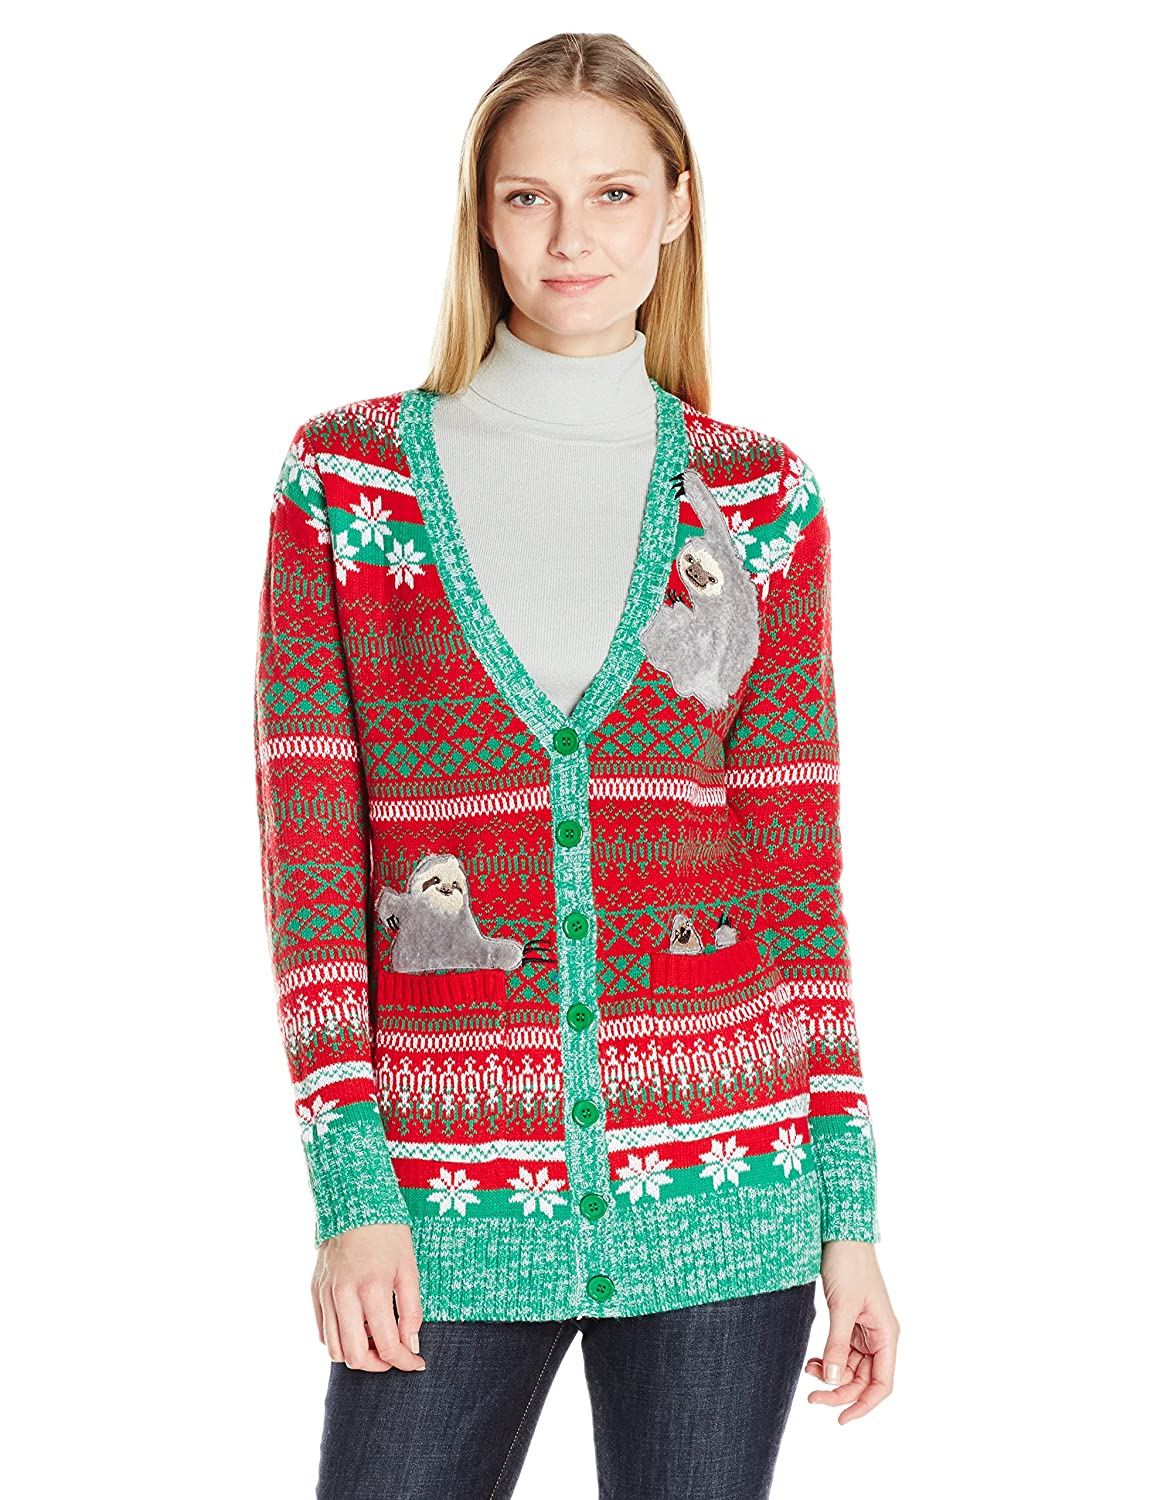 blizzard bay womens sloth cardigan ugly christmas sweater at amazon womens clothing store - Best Christmas Sweaters